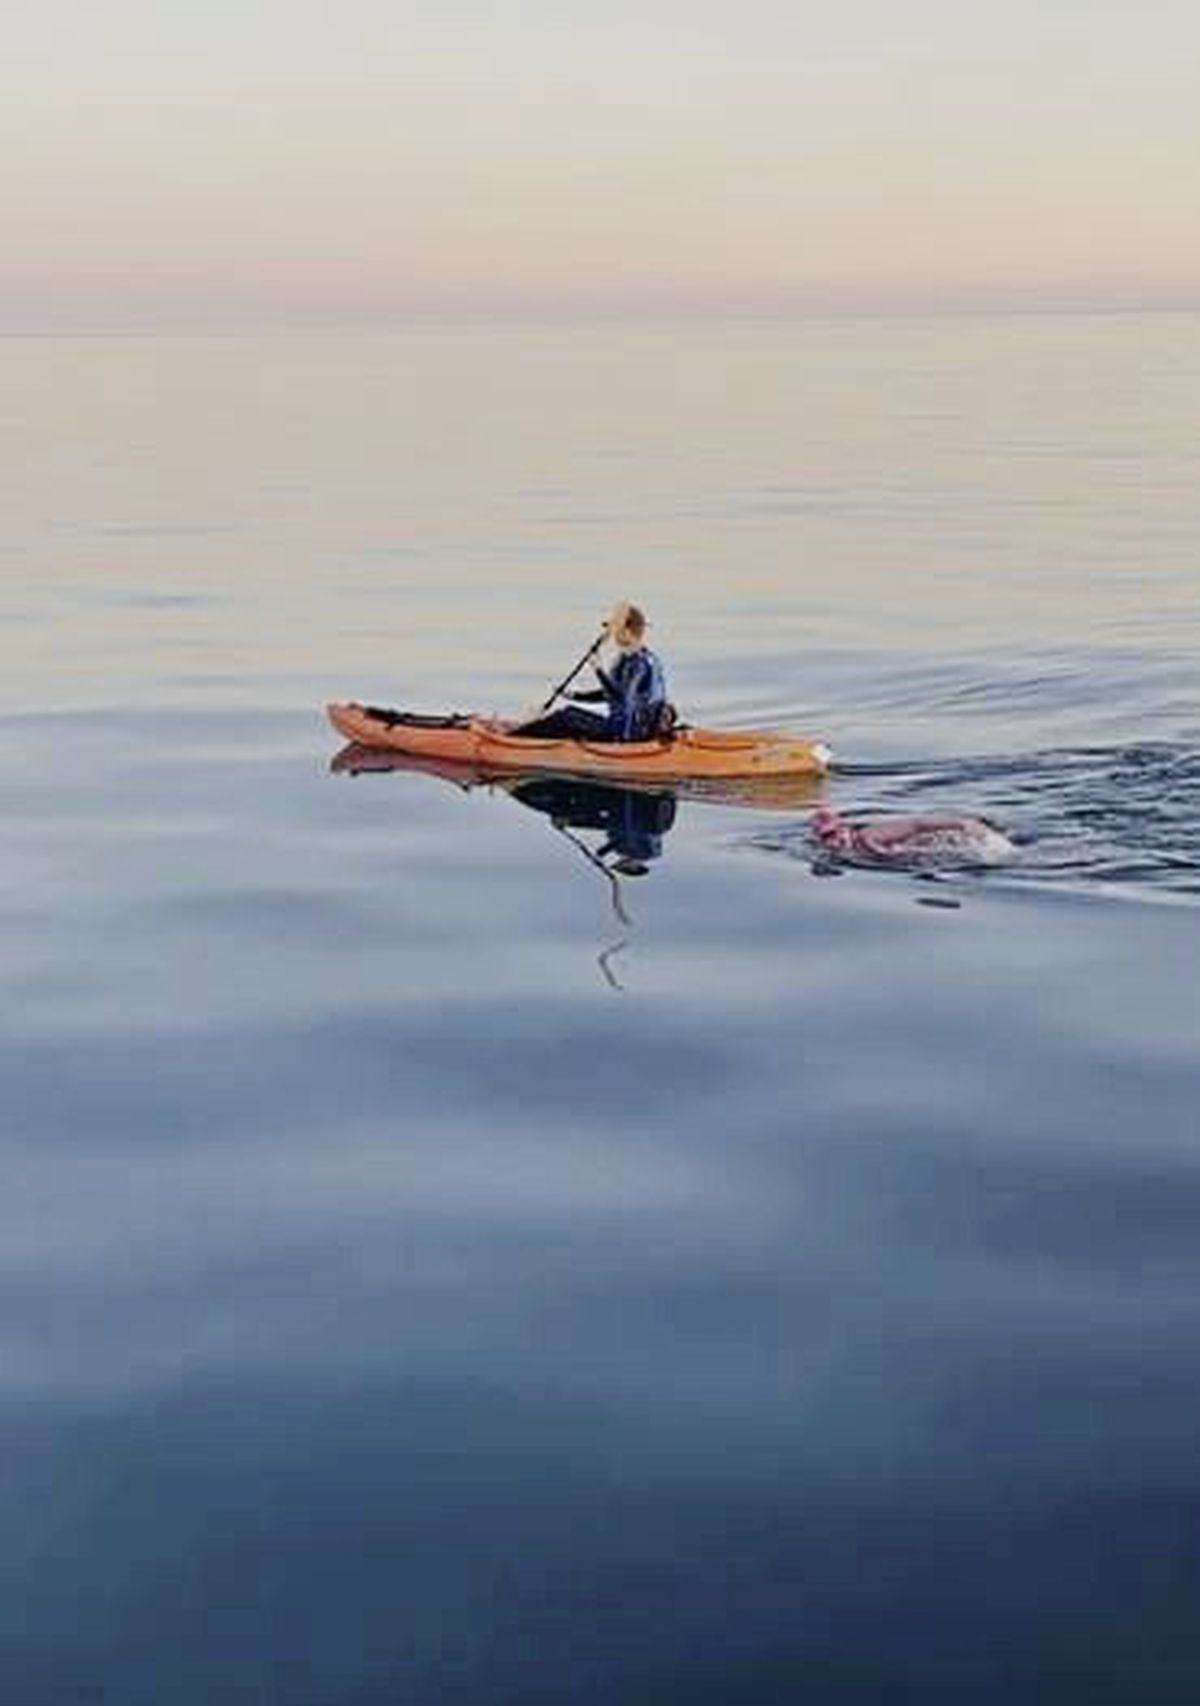 Amy Ennion's partner, Will, kayaked alongside her as she approached France, as the support boat had to stay back to avoid rocks. (29664721)